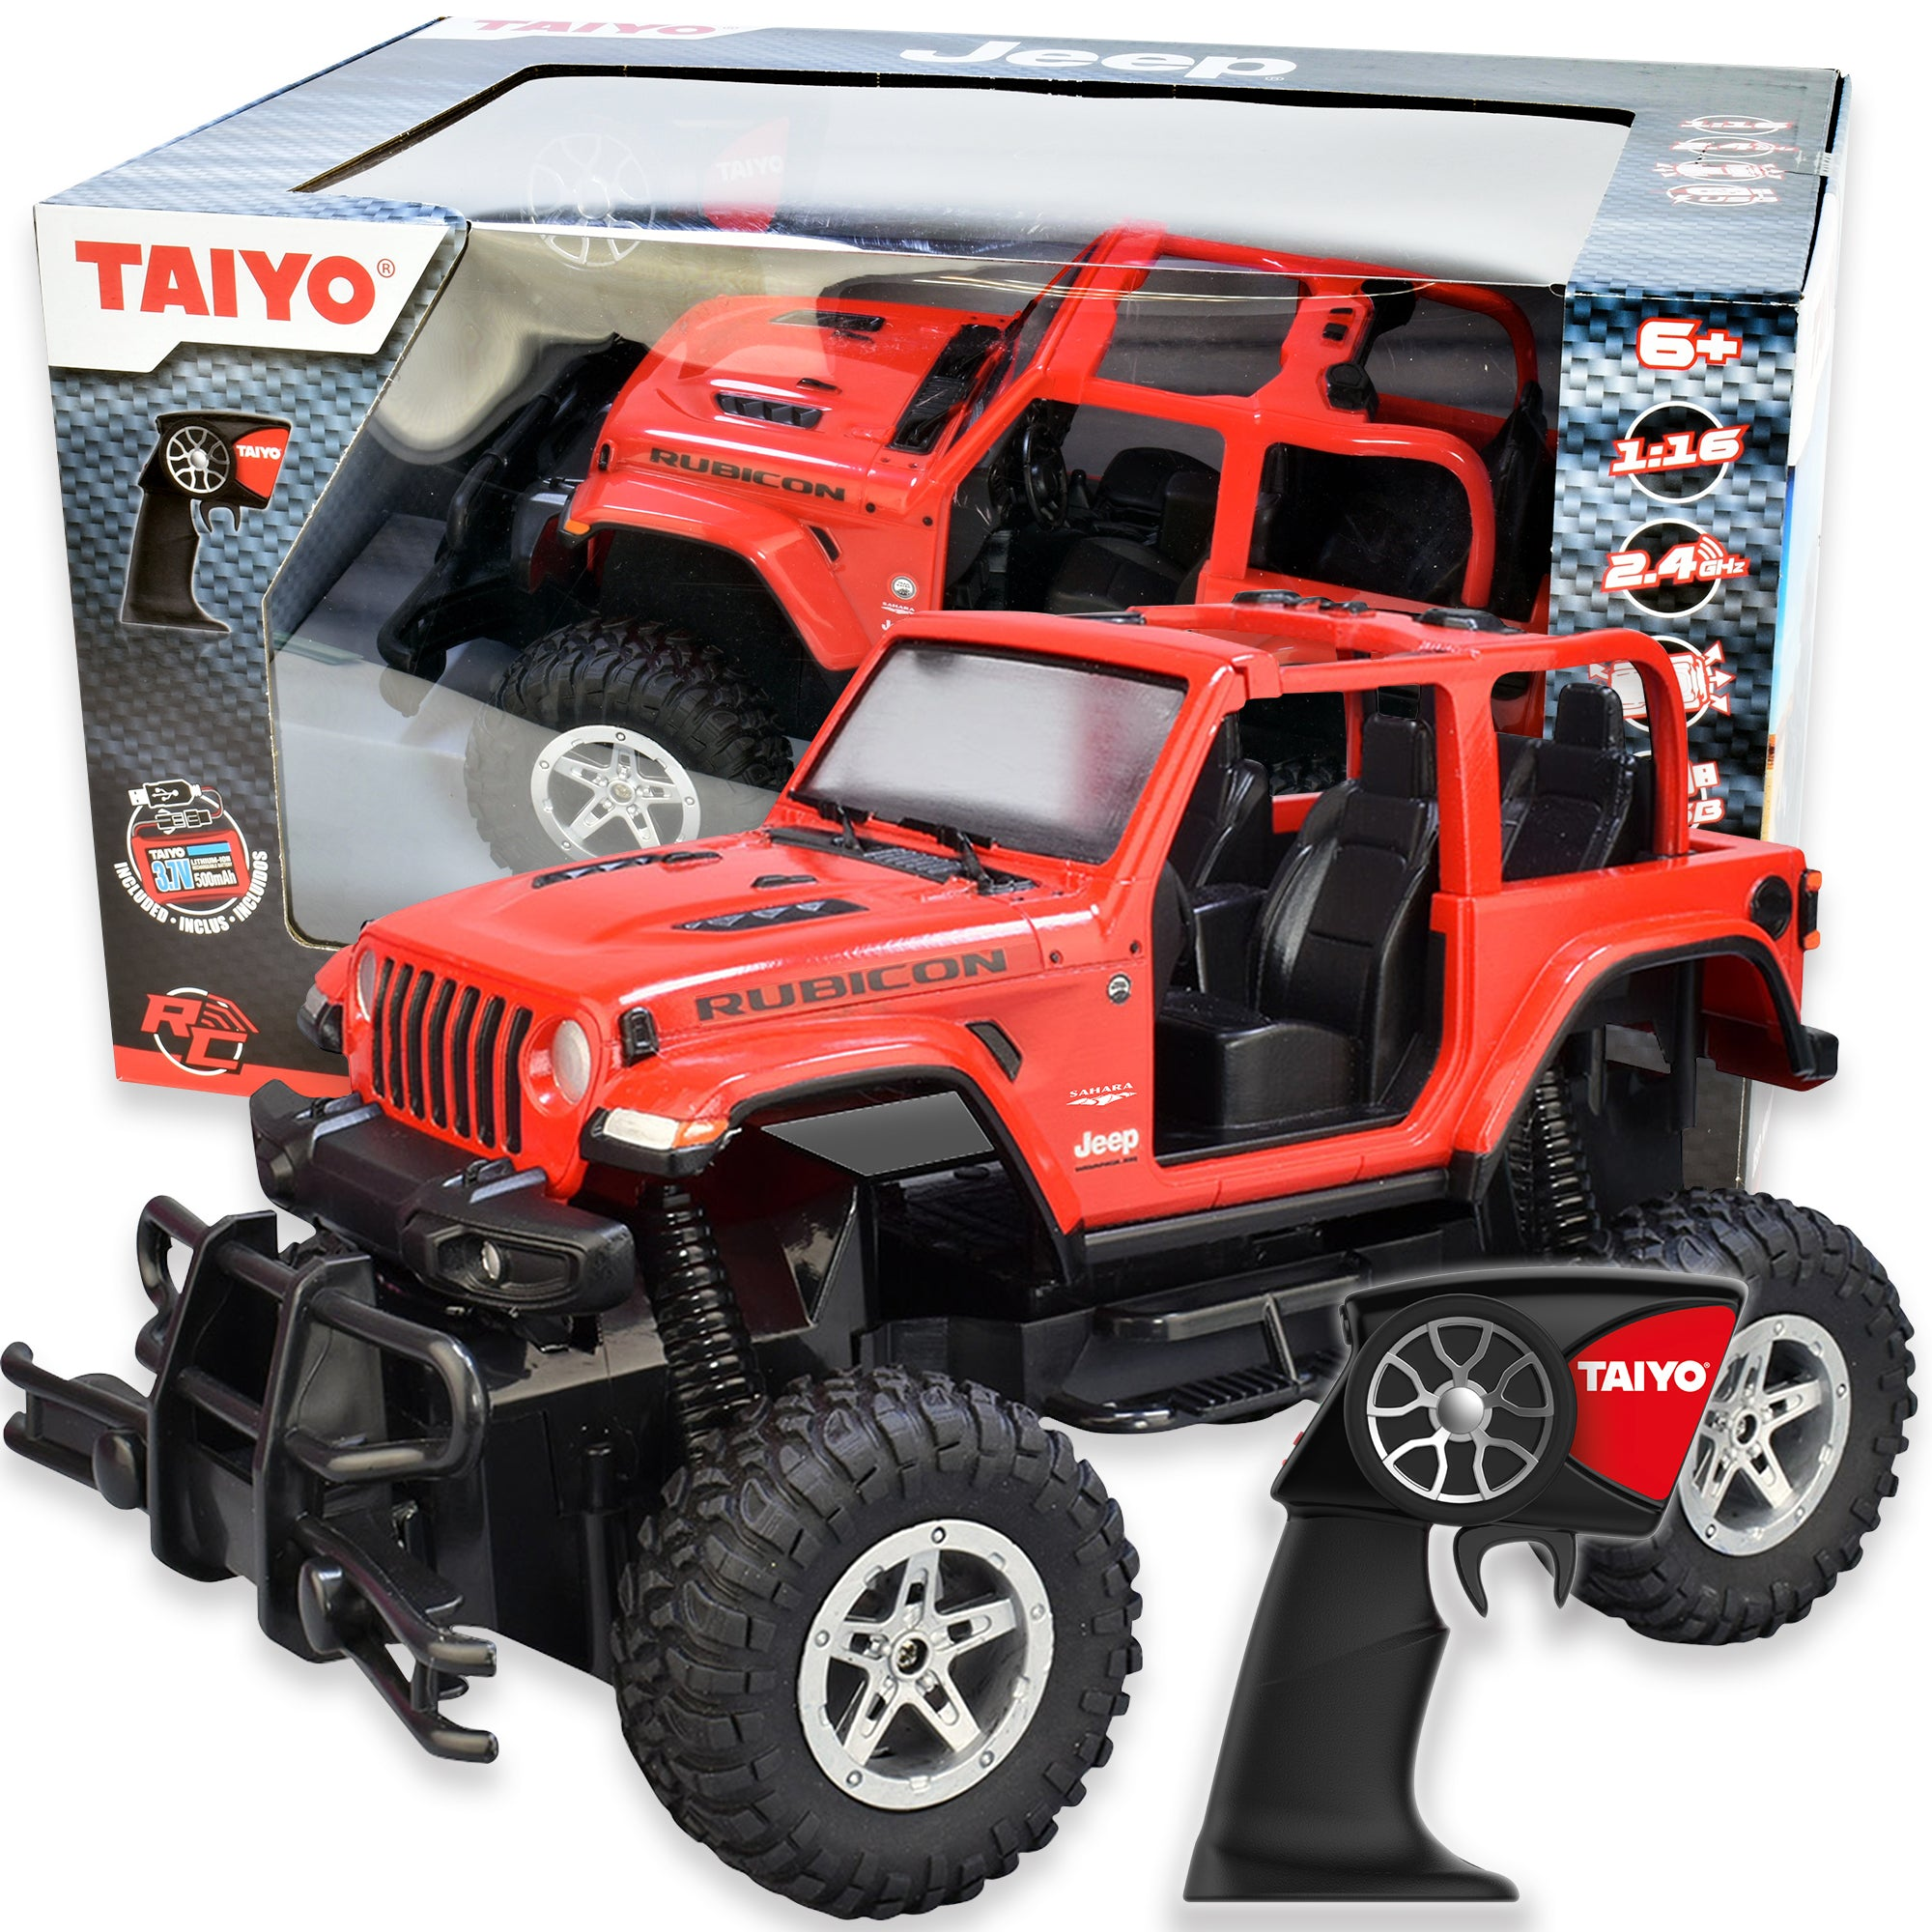 Taiyo Rc Jeep Rubicon Big 1 16 Scale Thinairbrands